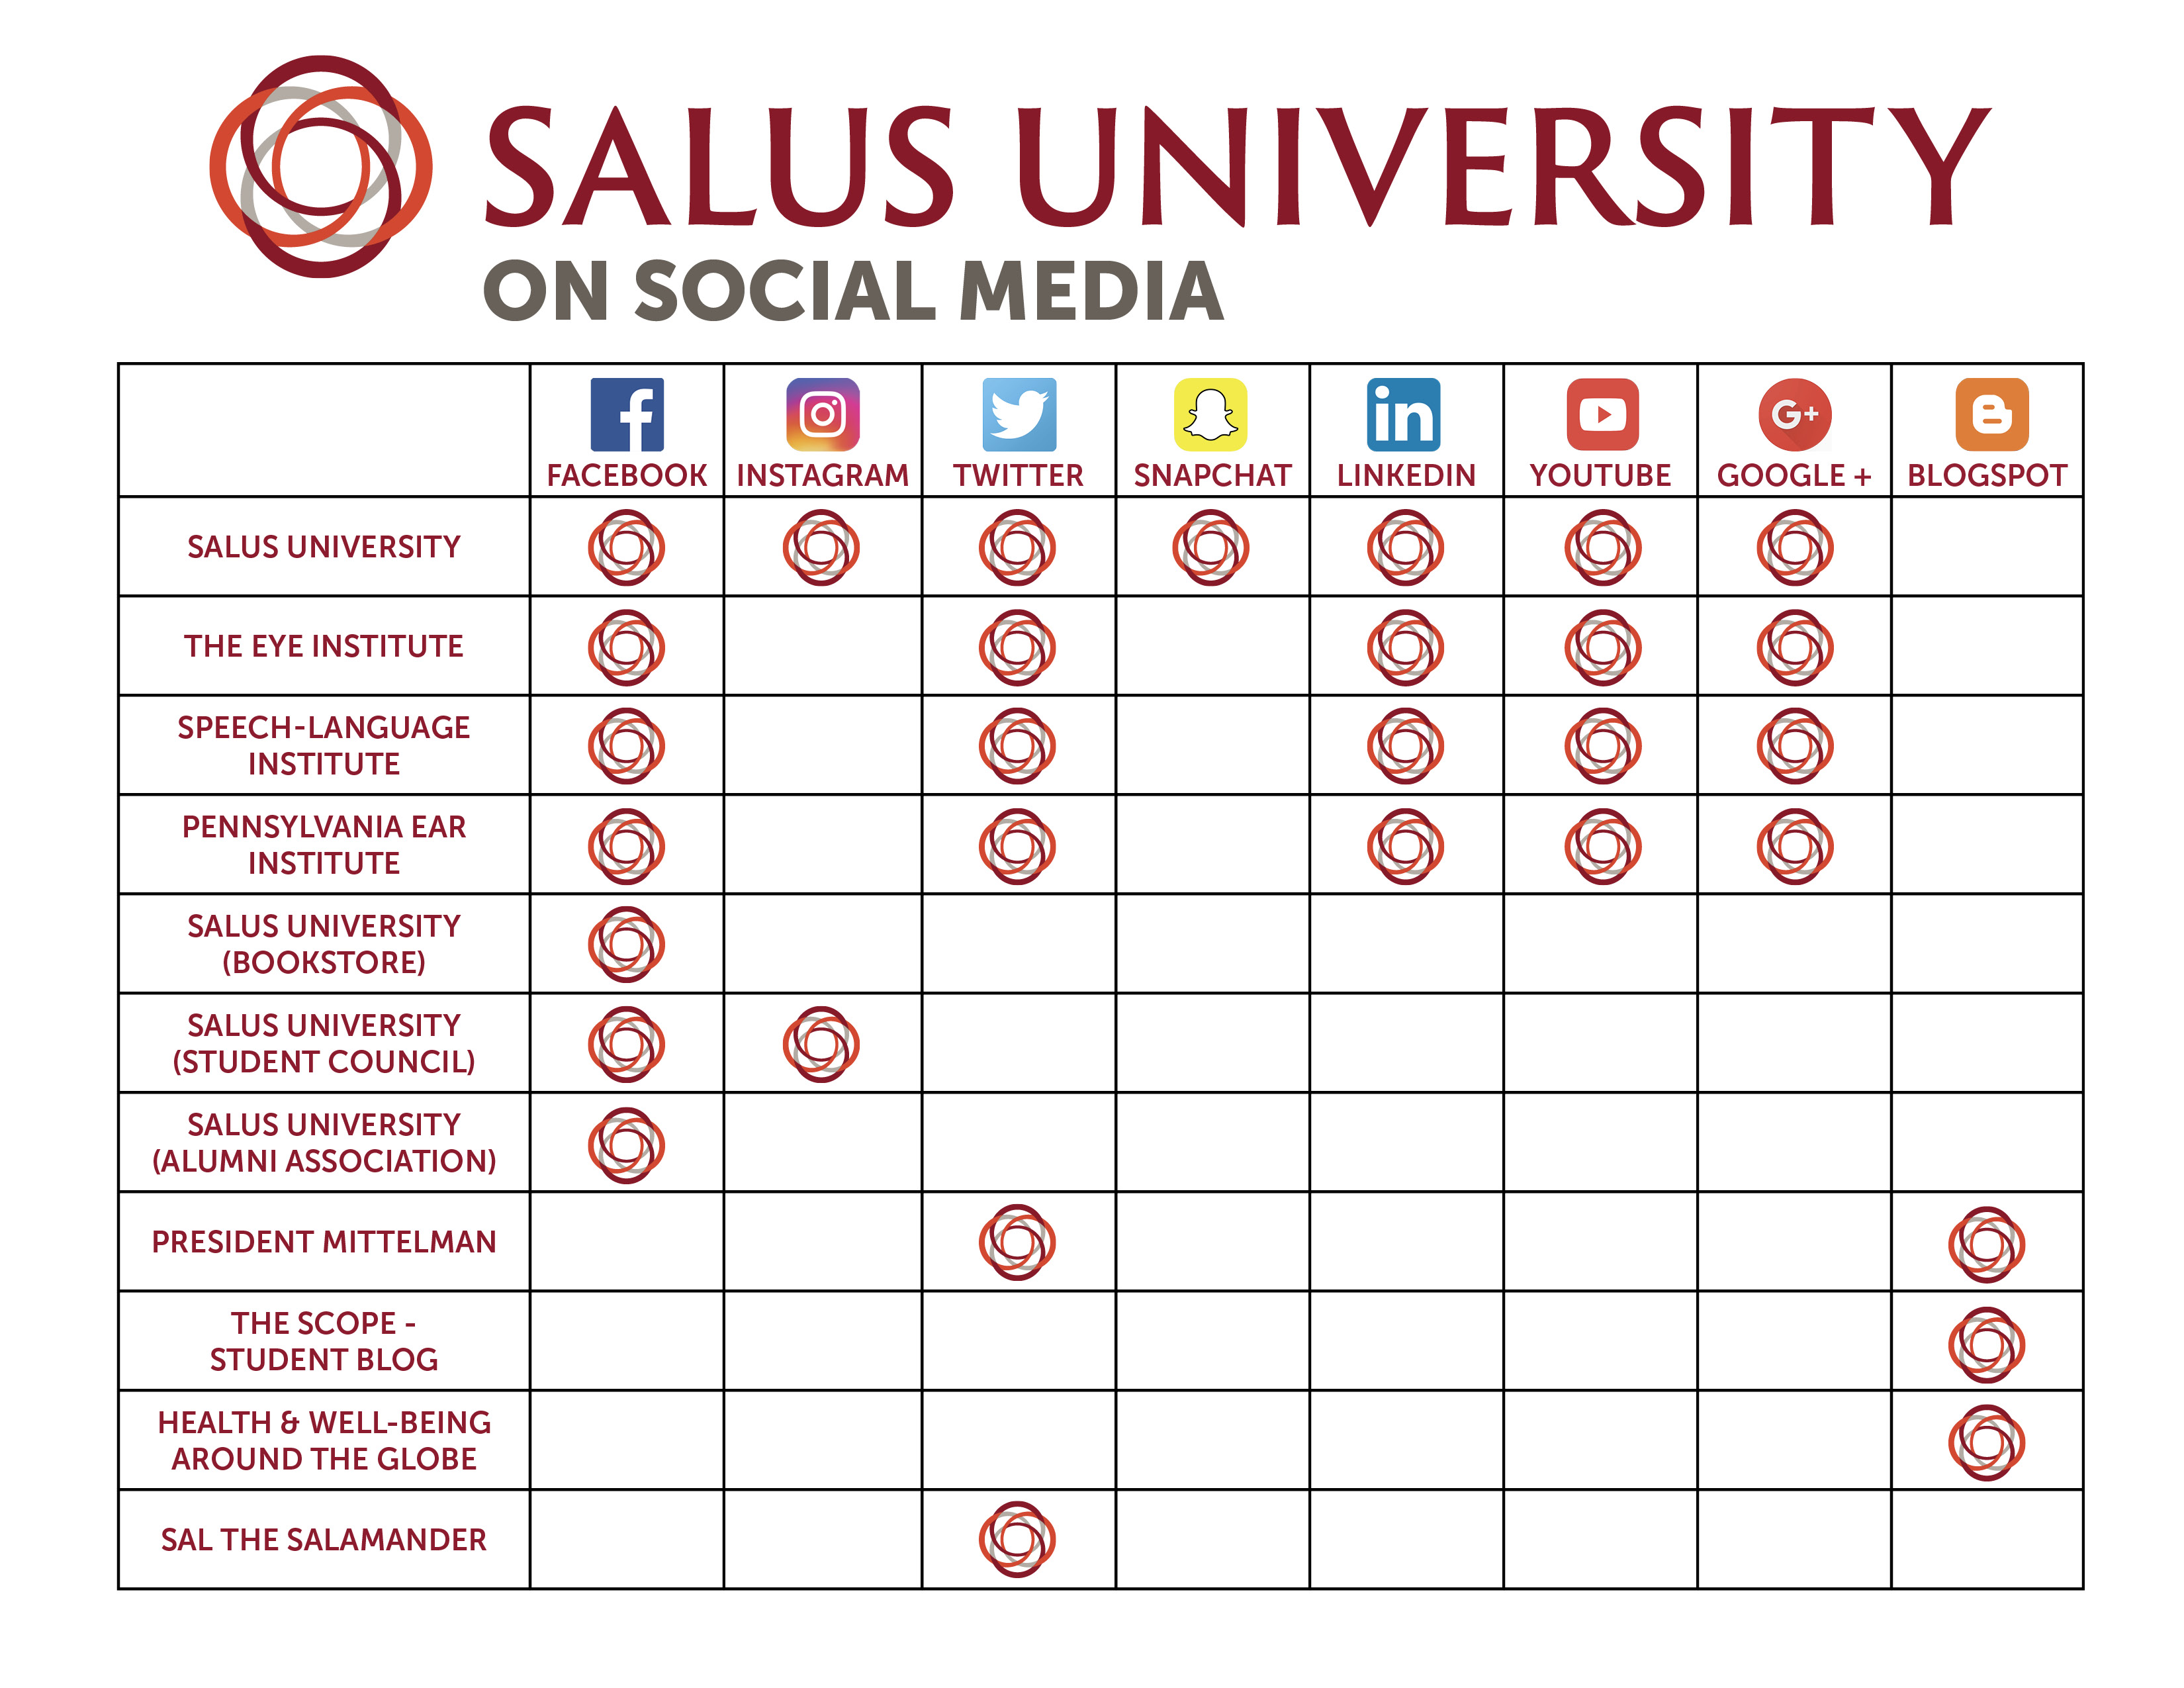 social media policy template for schools - tolle kostenloses konnossement galerie fortsetzung